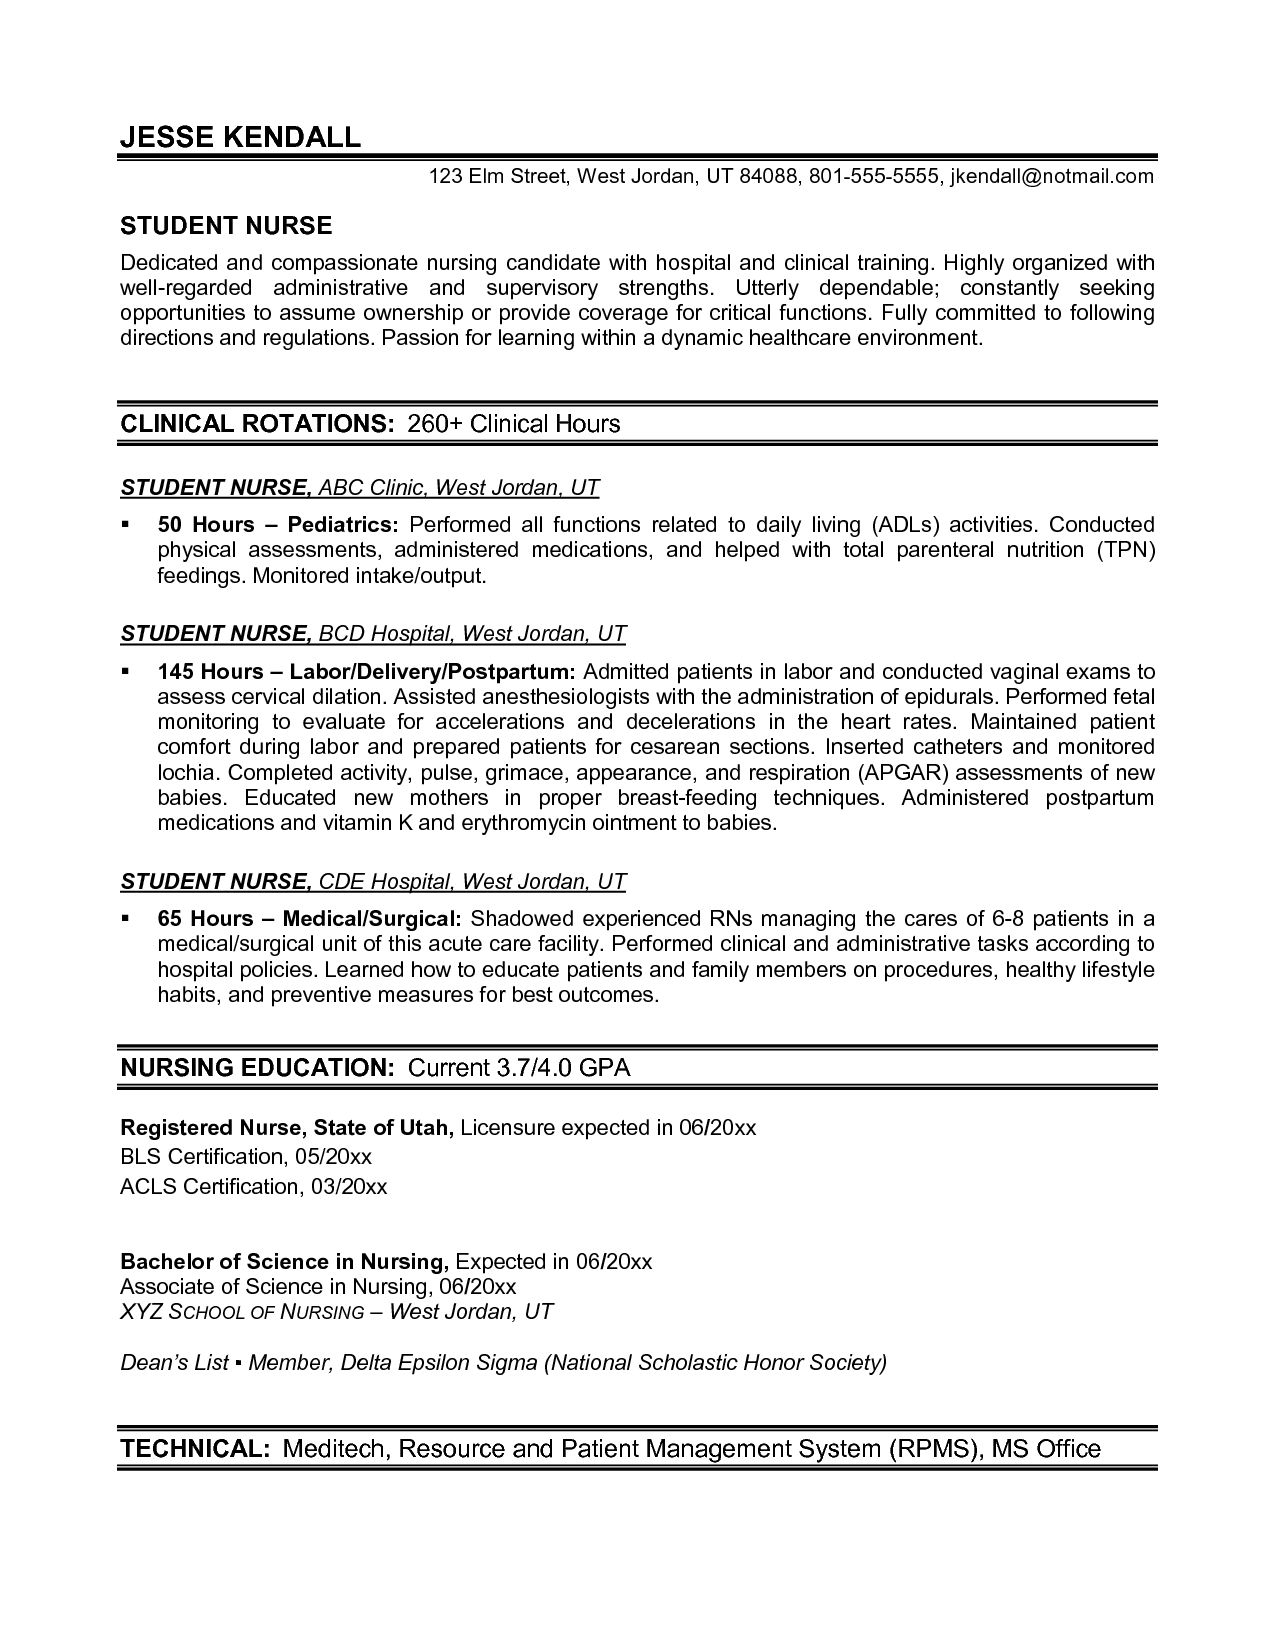 New Grad Resume Labor and Delivery RN - Yahoo Image Search Results ...